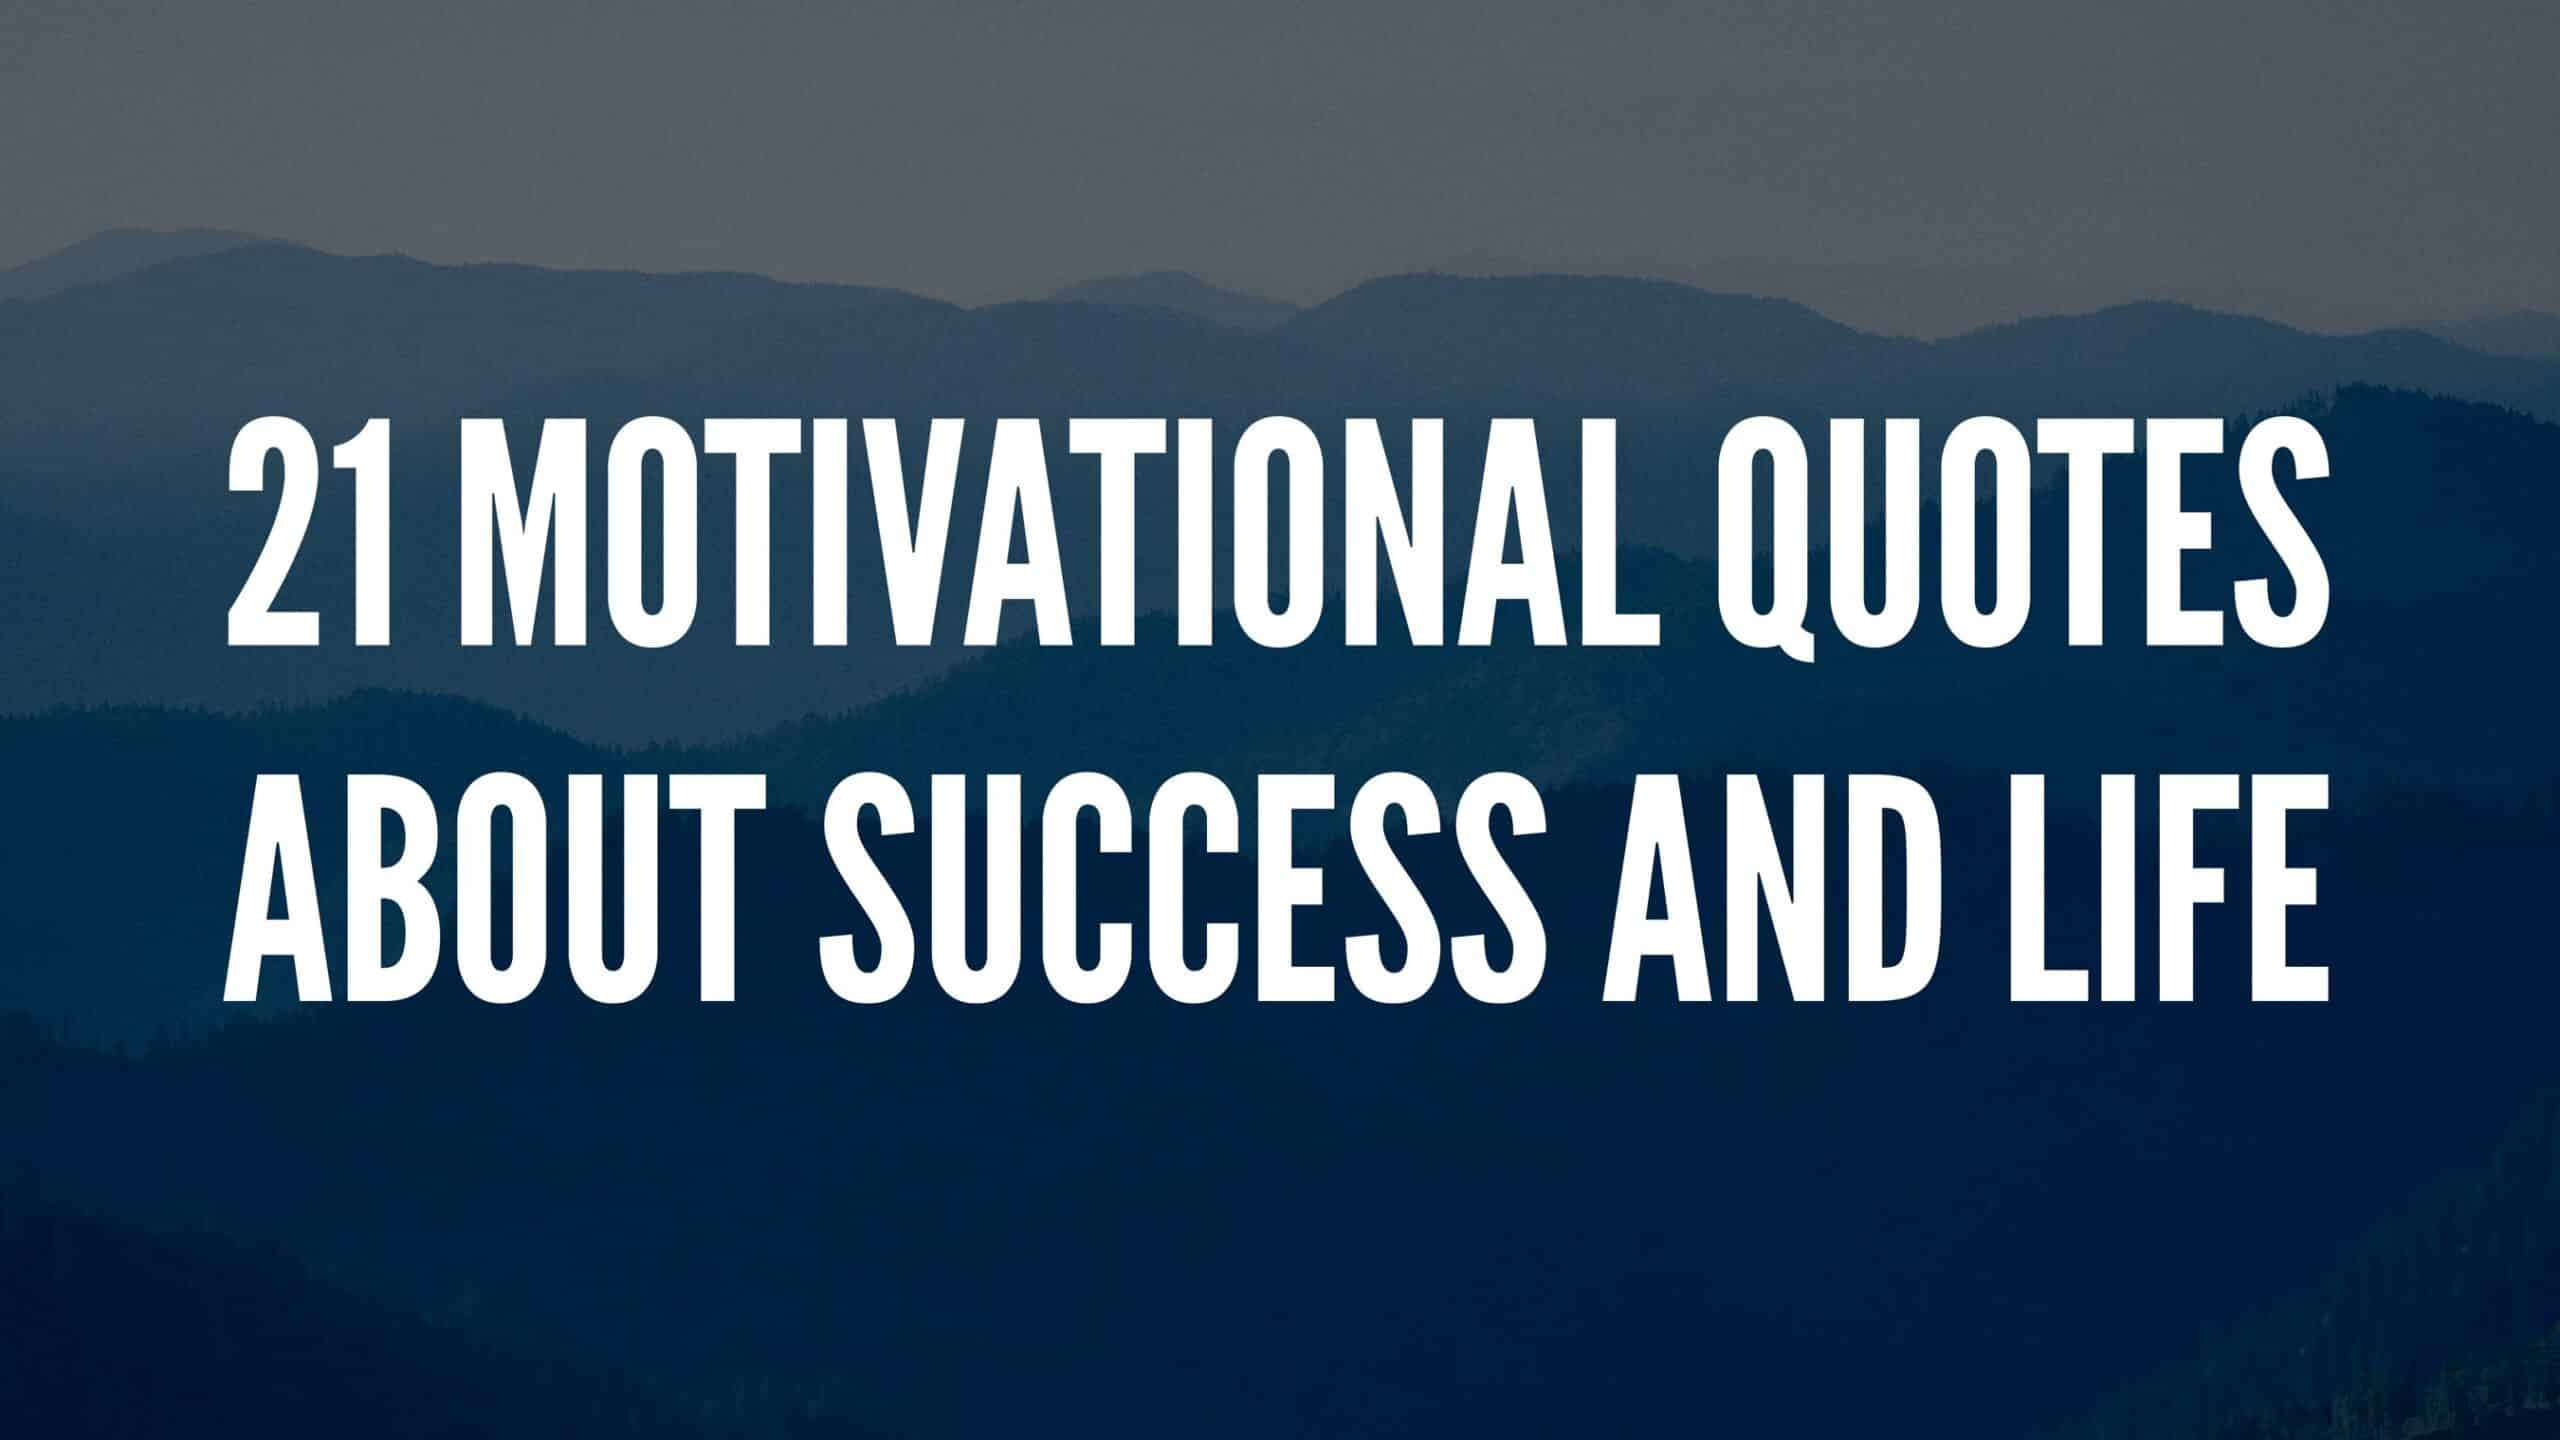 21 Motivational Quotes About Success and Life